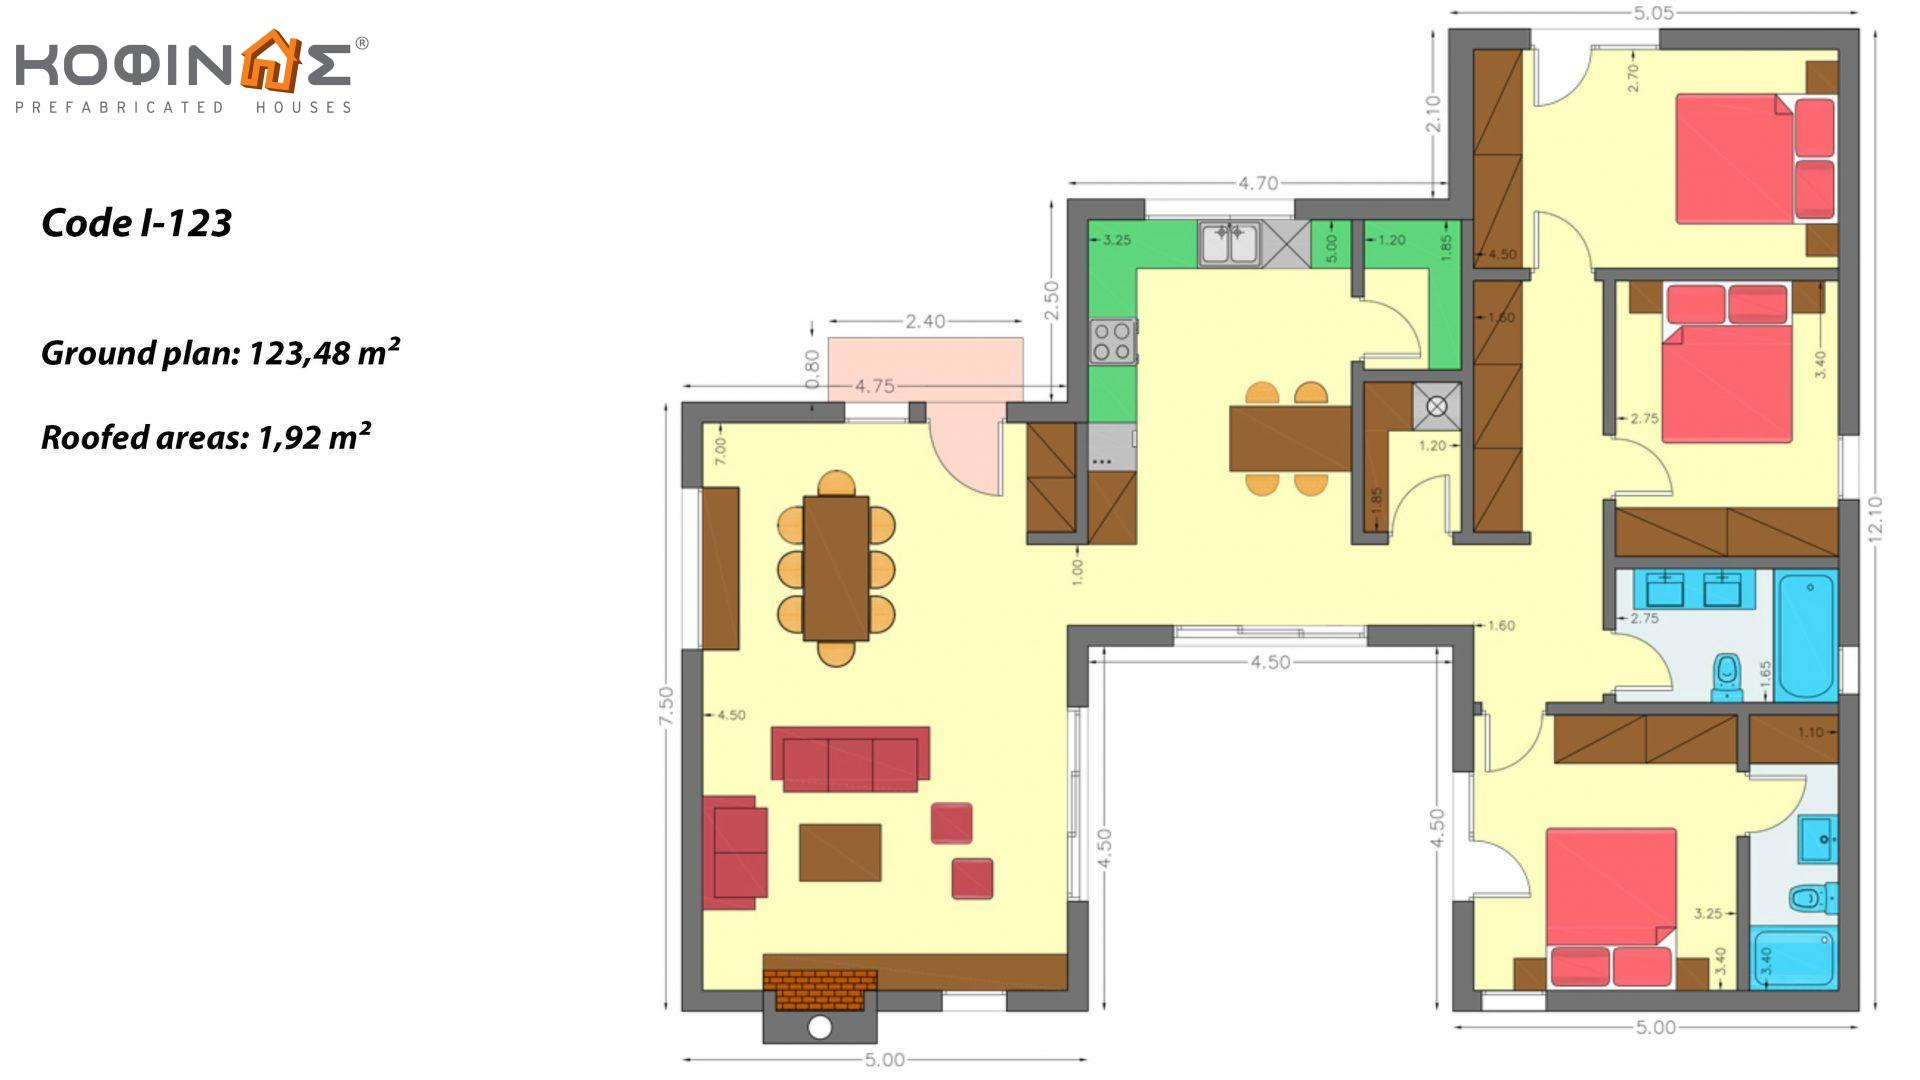 1-story house I-123, total surface of 123,48 m², roofed areas 1,92 m²